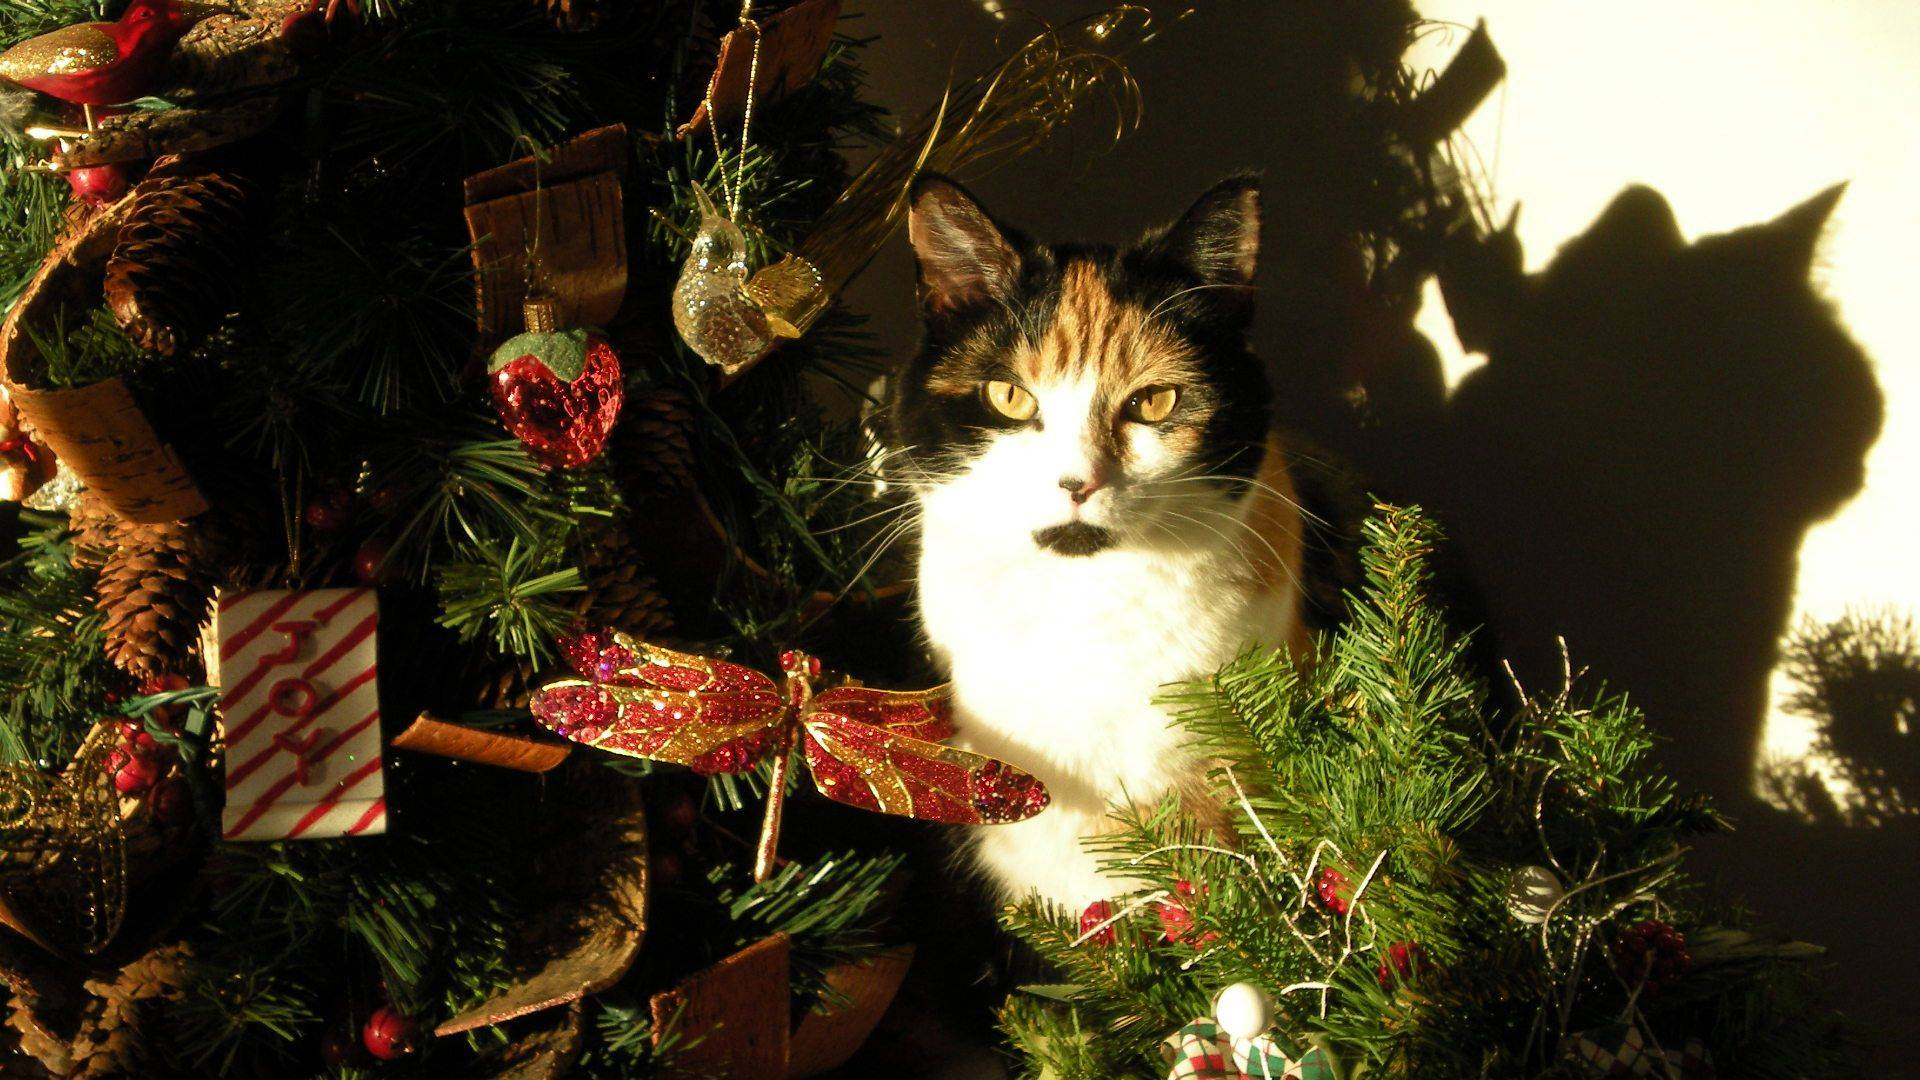 Suki the cat sits in the middle of my Christmas decorations as the sun shines through the window.